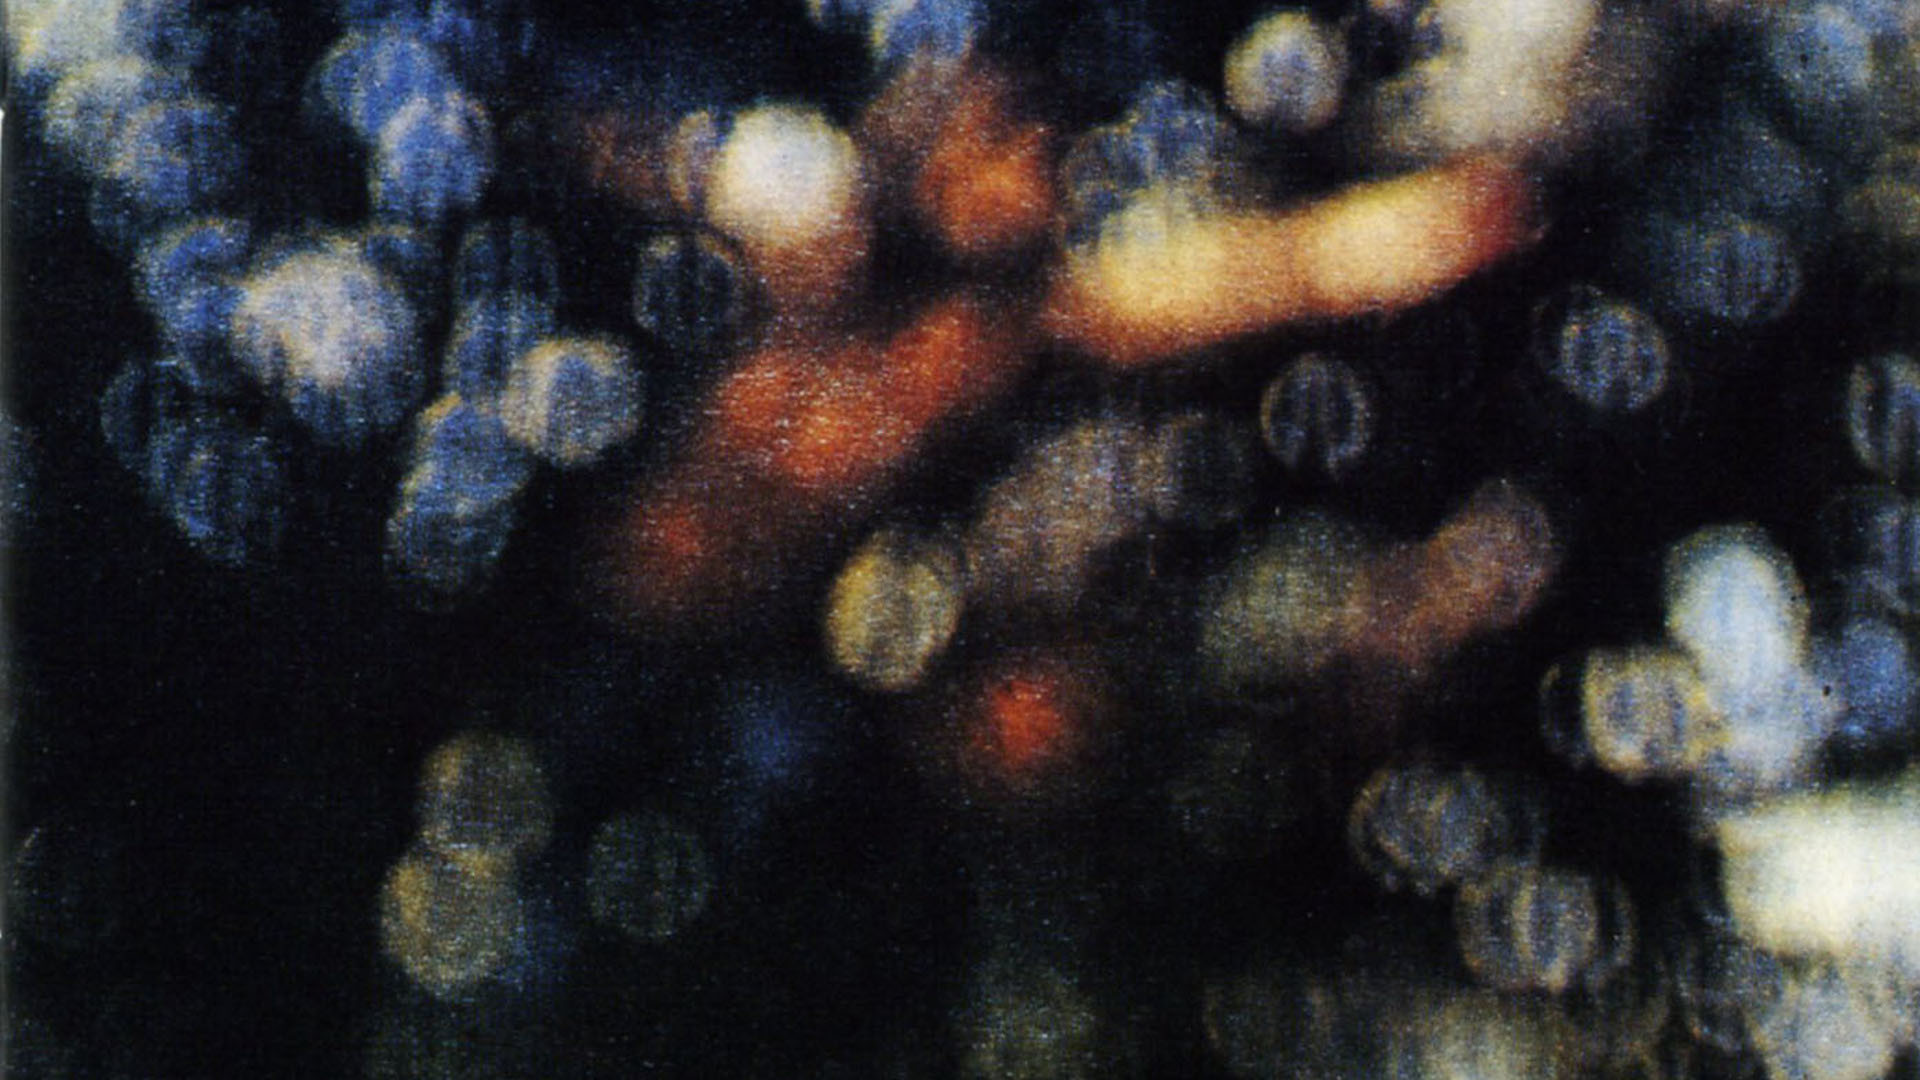 Gallery of Pink Floyd Obscured By Clouds Wallpaper